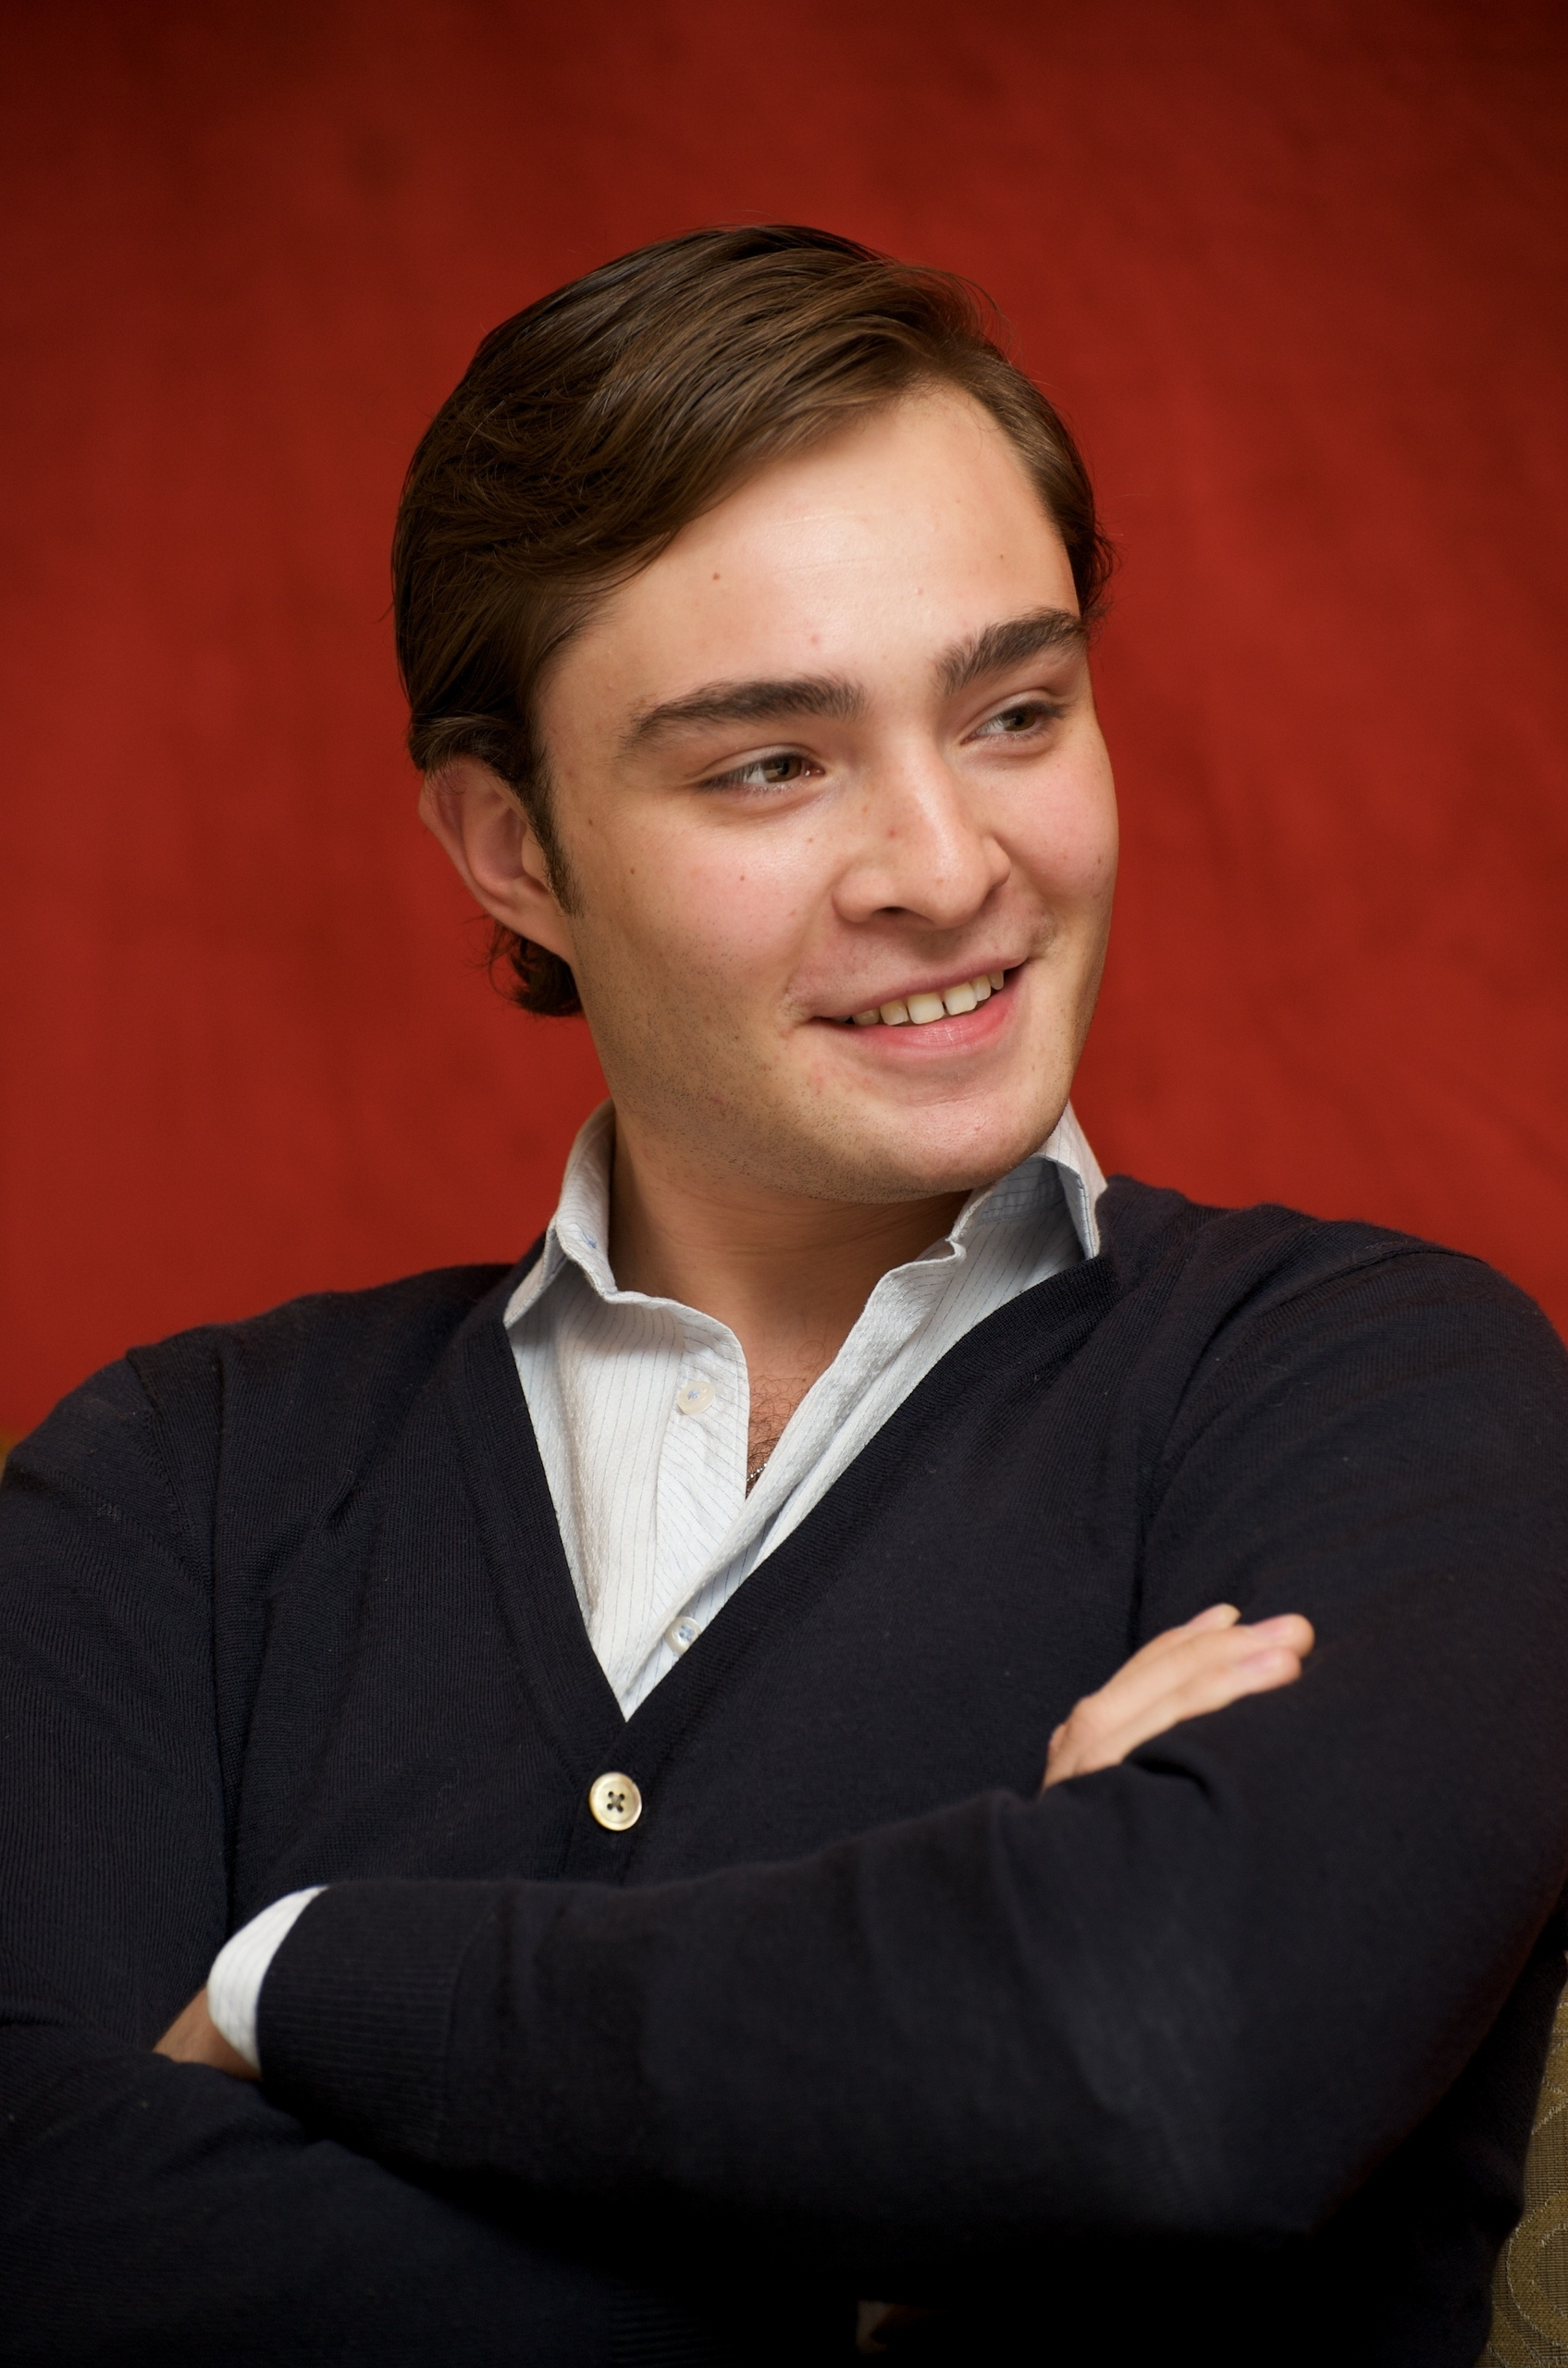 Ed - Ed Westwick Photo (7517784) - Fanpop Leightonmeester